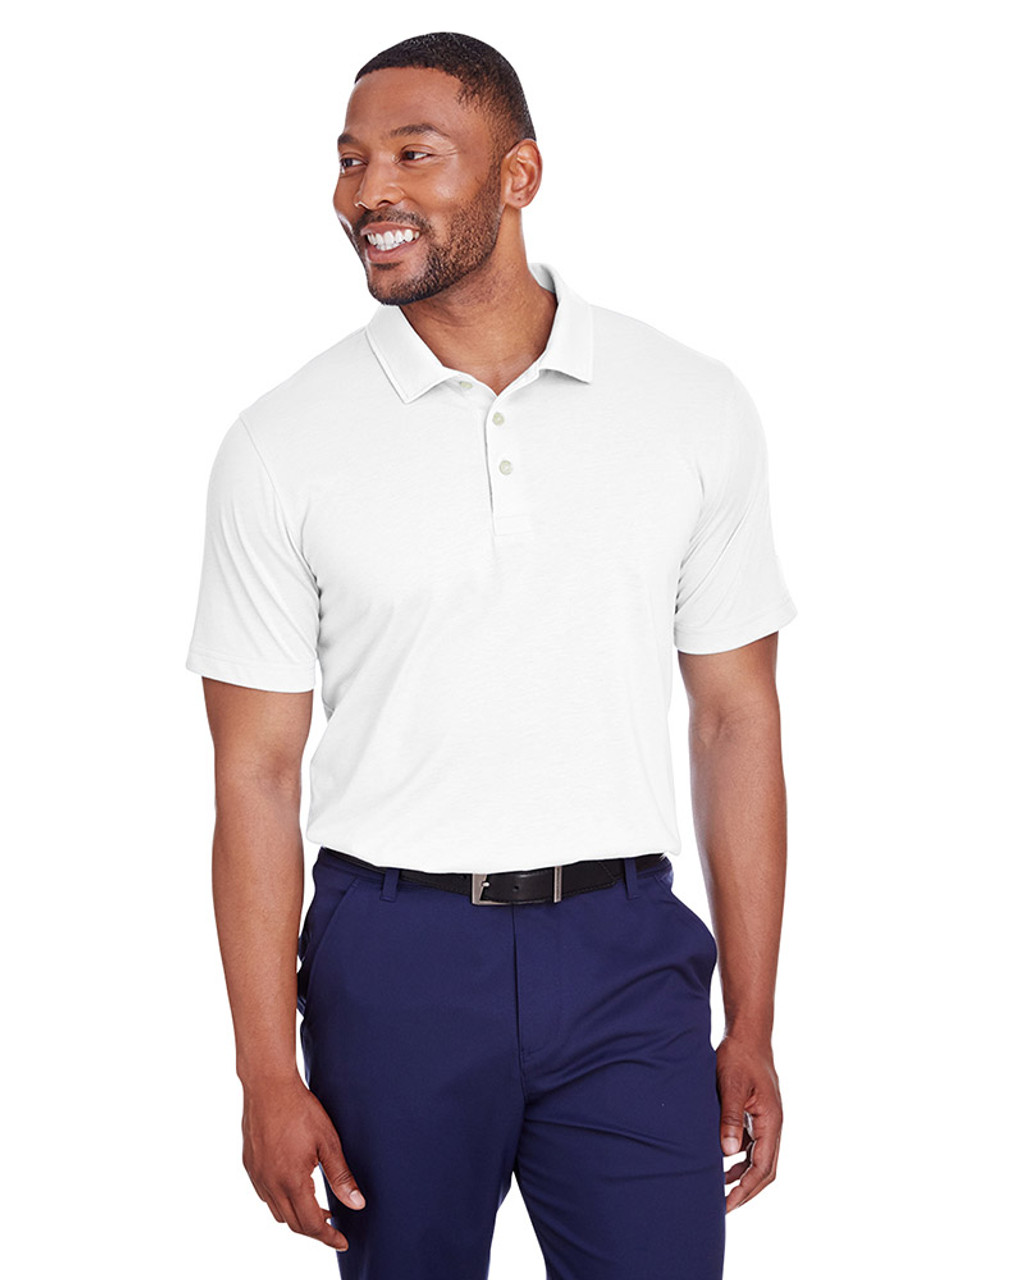 Bright White - 596920 Puma Golf Men's Fusion Polo | Blankclothing.ca